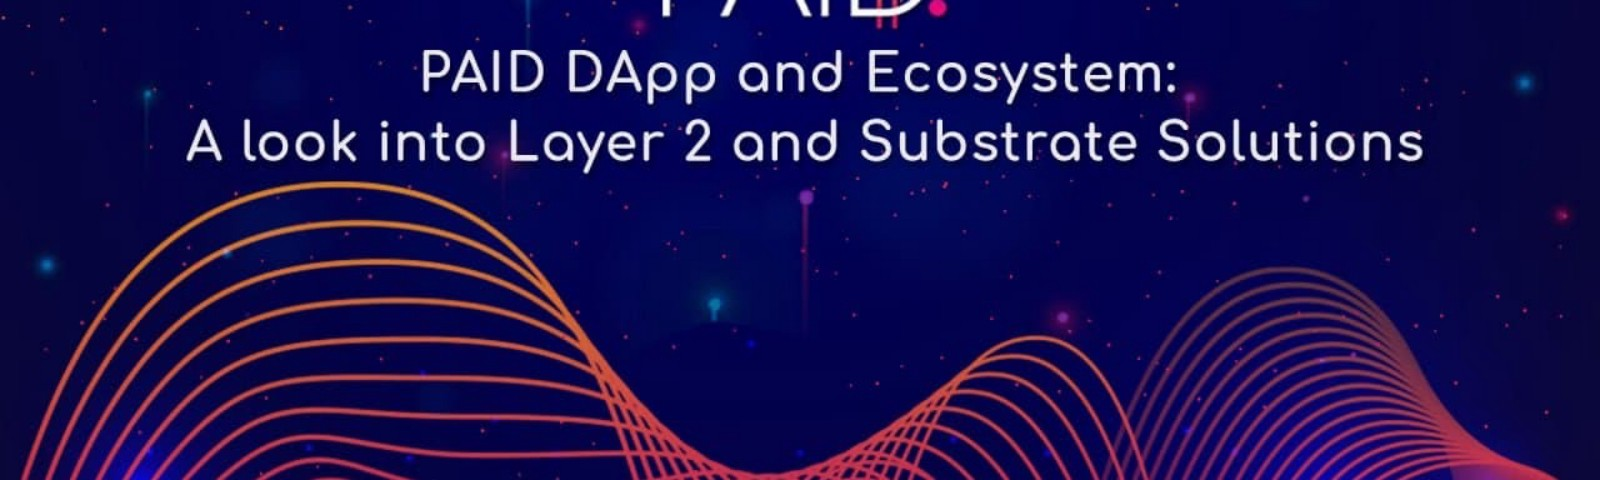 PAID NETWORK Dapp and Ecosystem: a look into Layer 2 and Substrate Solutions